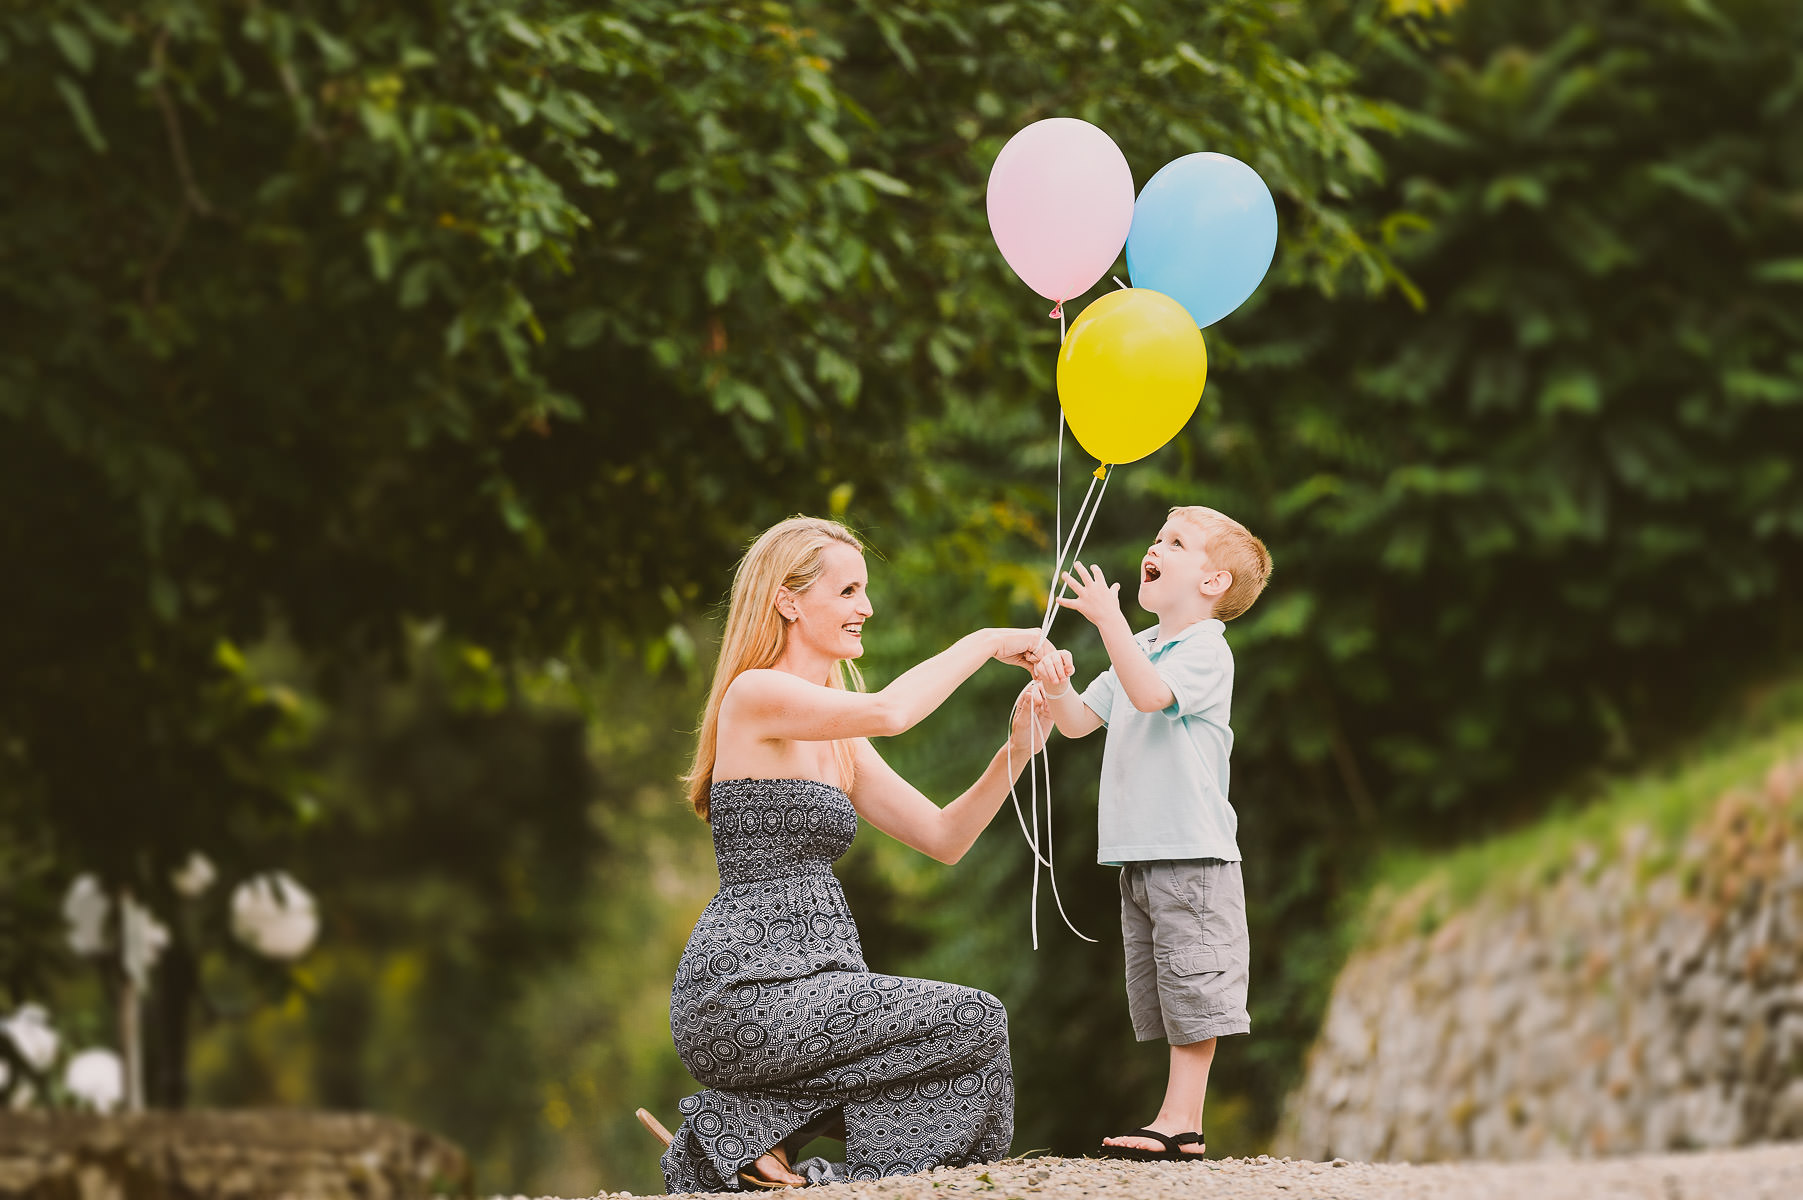 Tuscany countryside exciting family renunion photo shoot in Chianti with colour balloons